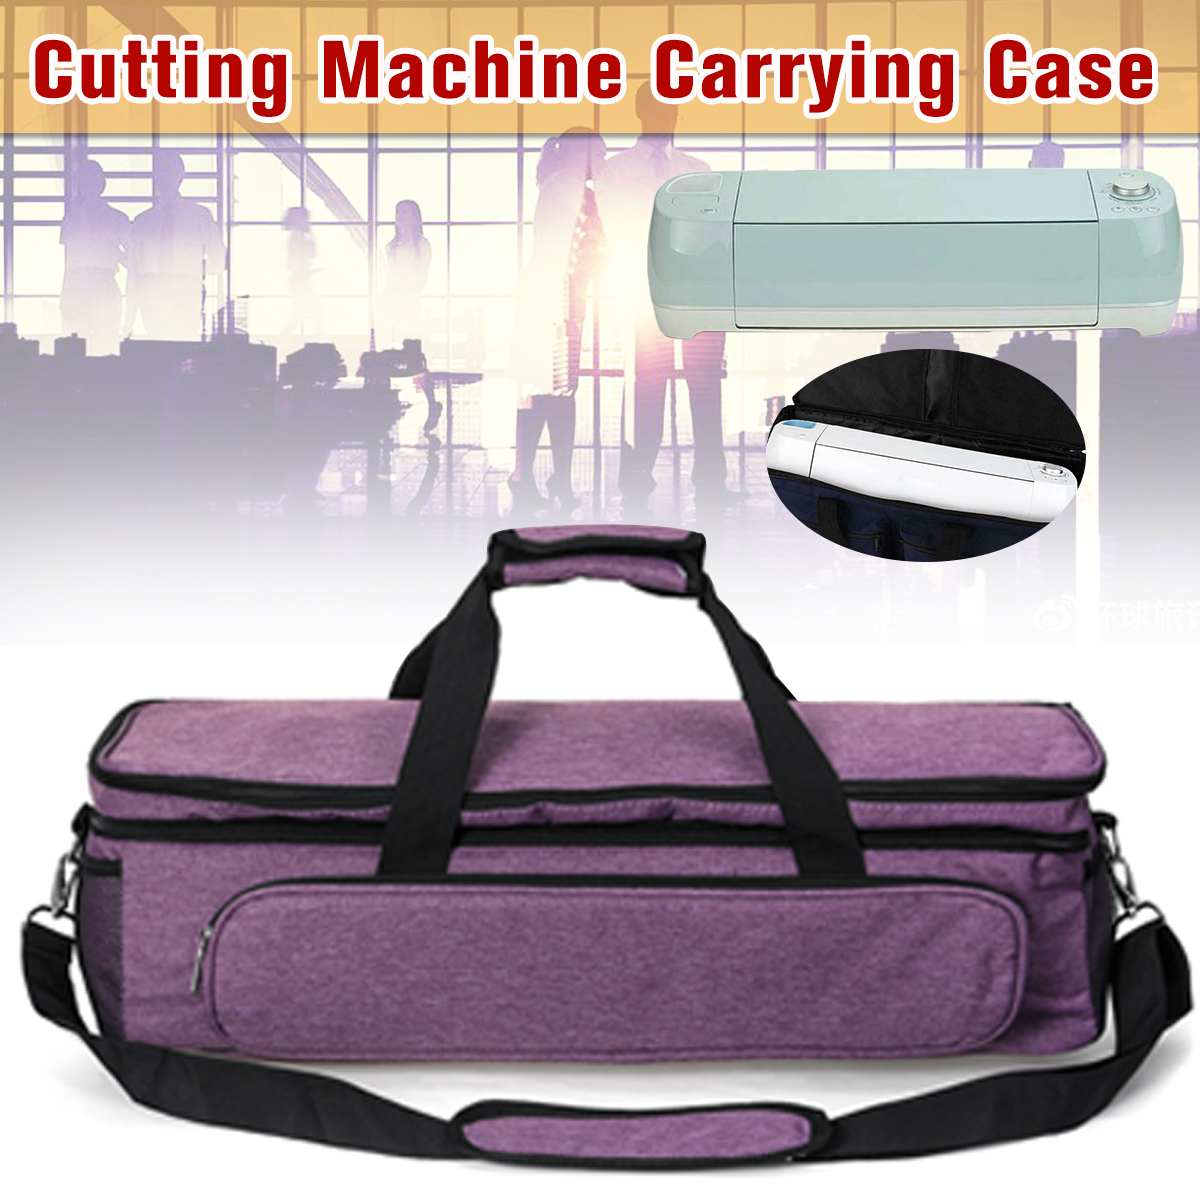 Oxford Cloth Cutting Machine Tool Carrying Case Home Travel Storage Bag For Cricut Explore Air 2